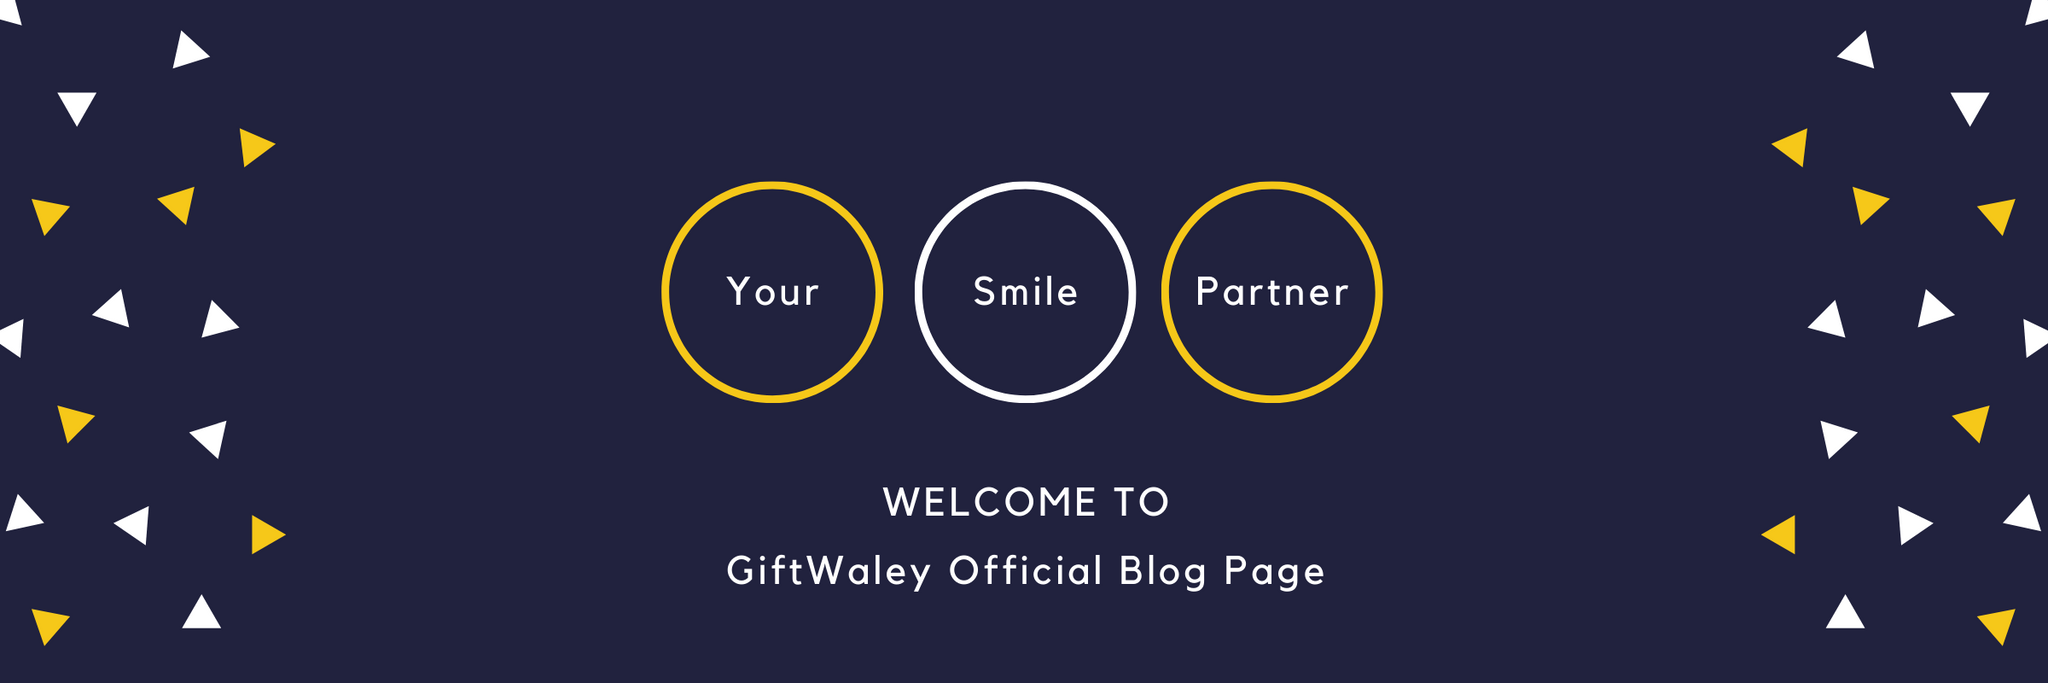 GiftWaley Official Blog Page | Online Gifts in India